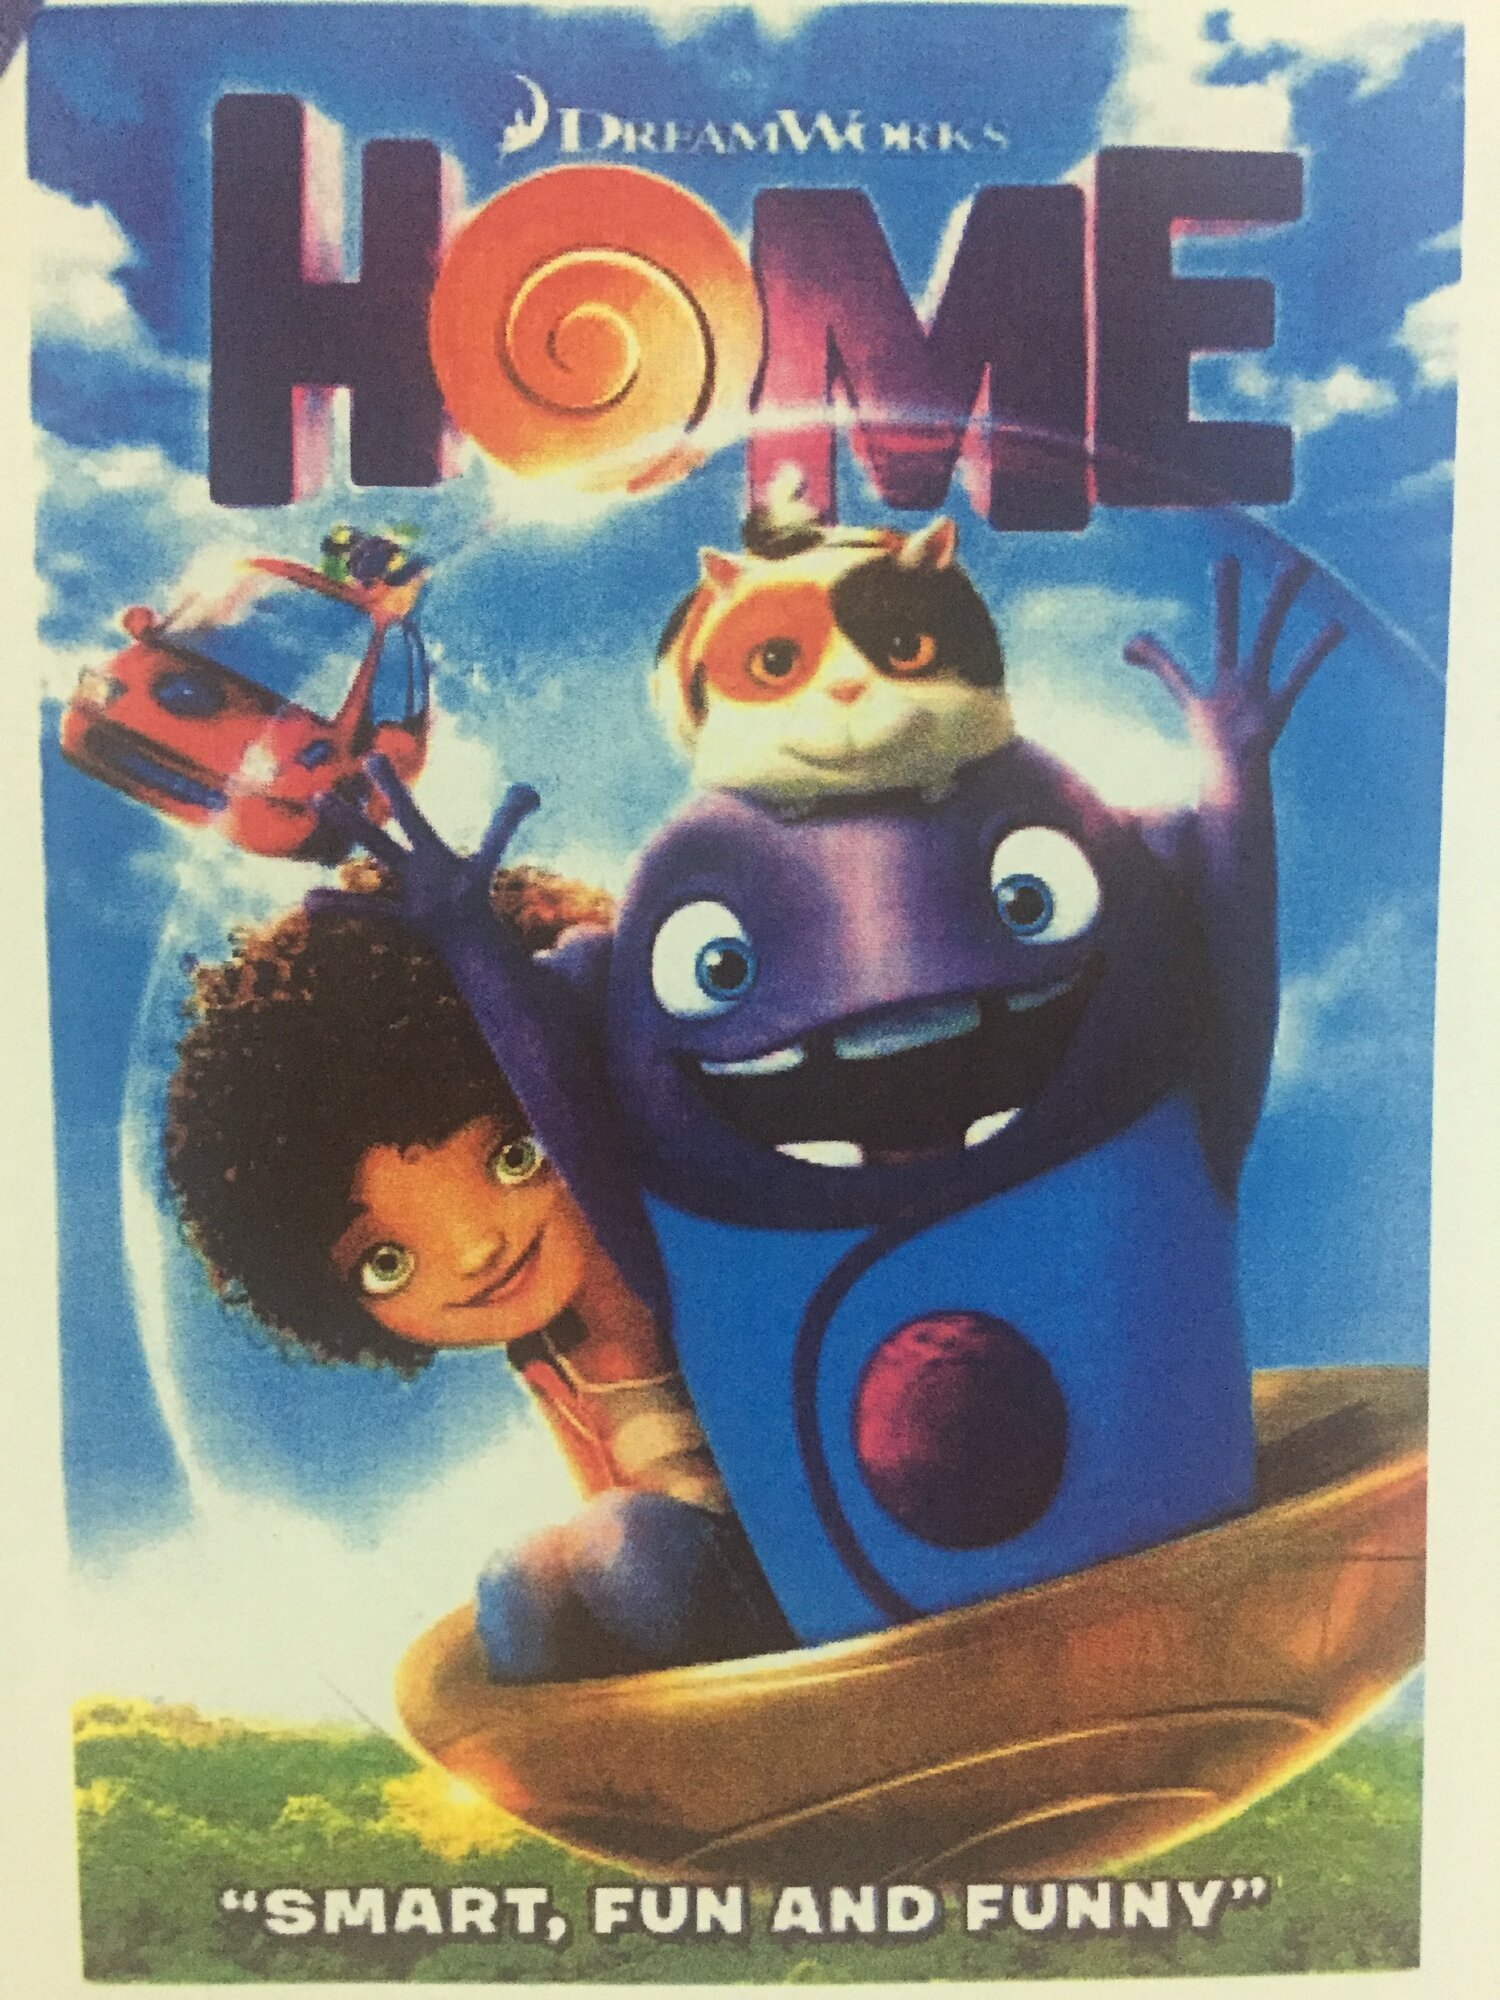 TONIGHT 09.13 PS20 PTA MOVIE NIGHT @ 6pm - FREE MOVIE, POPCORN & COOKIES at the PS20 Auditorium.